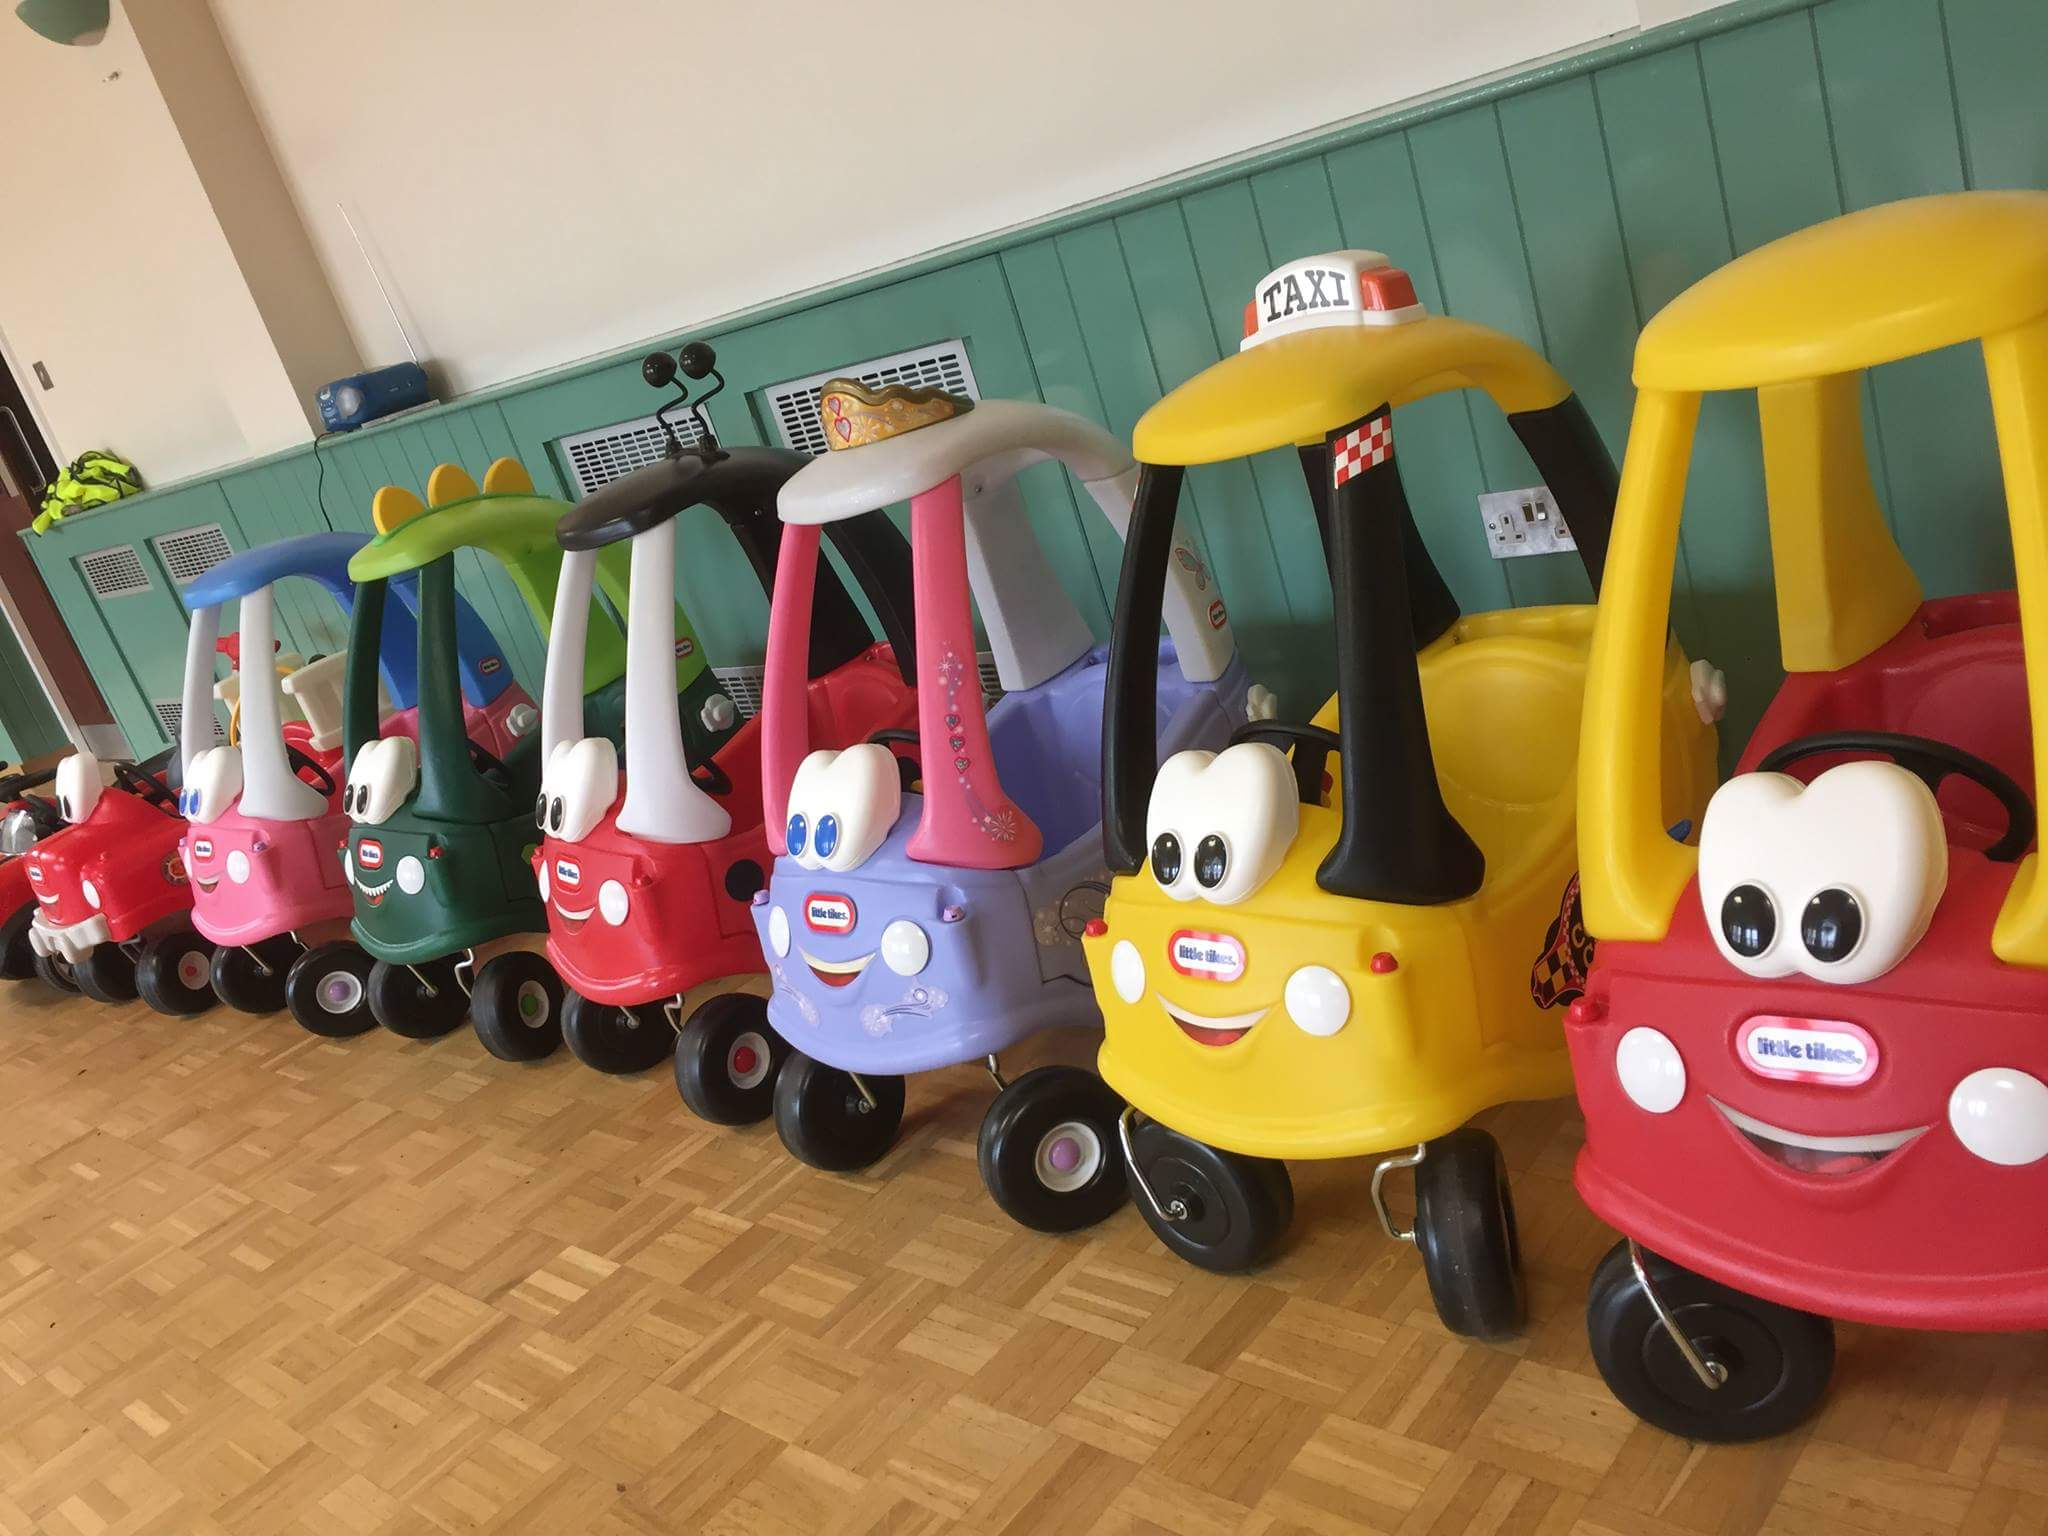 a collection of Little Tikes ride on toys